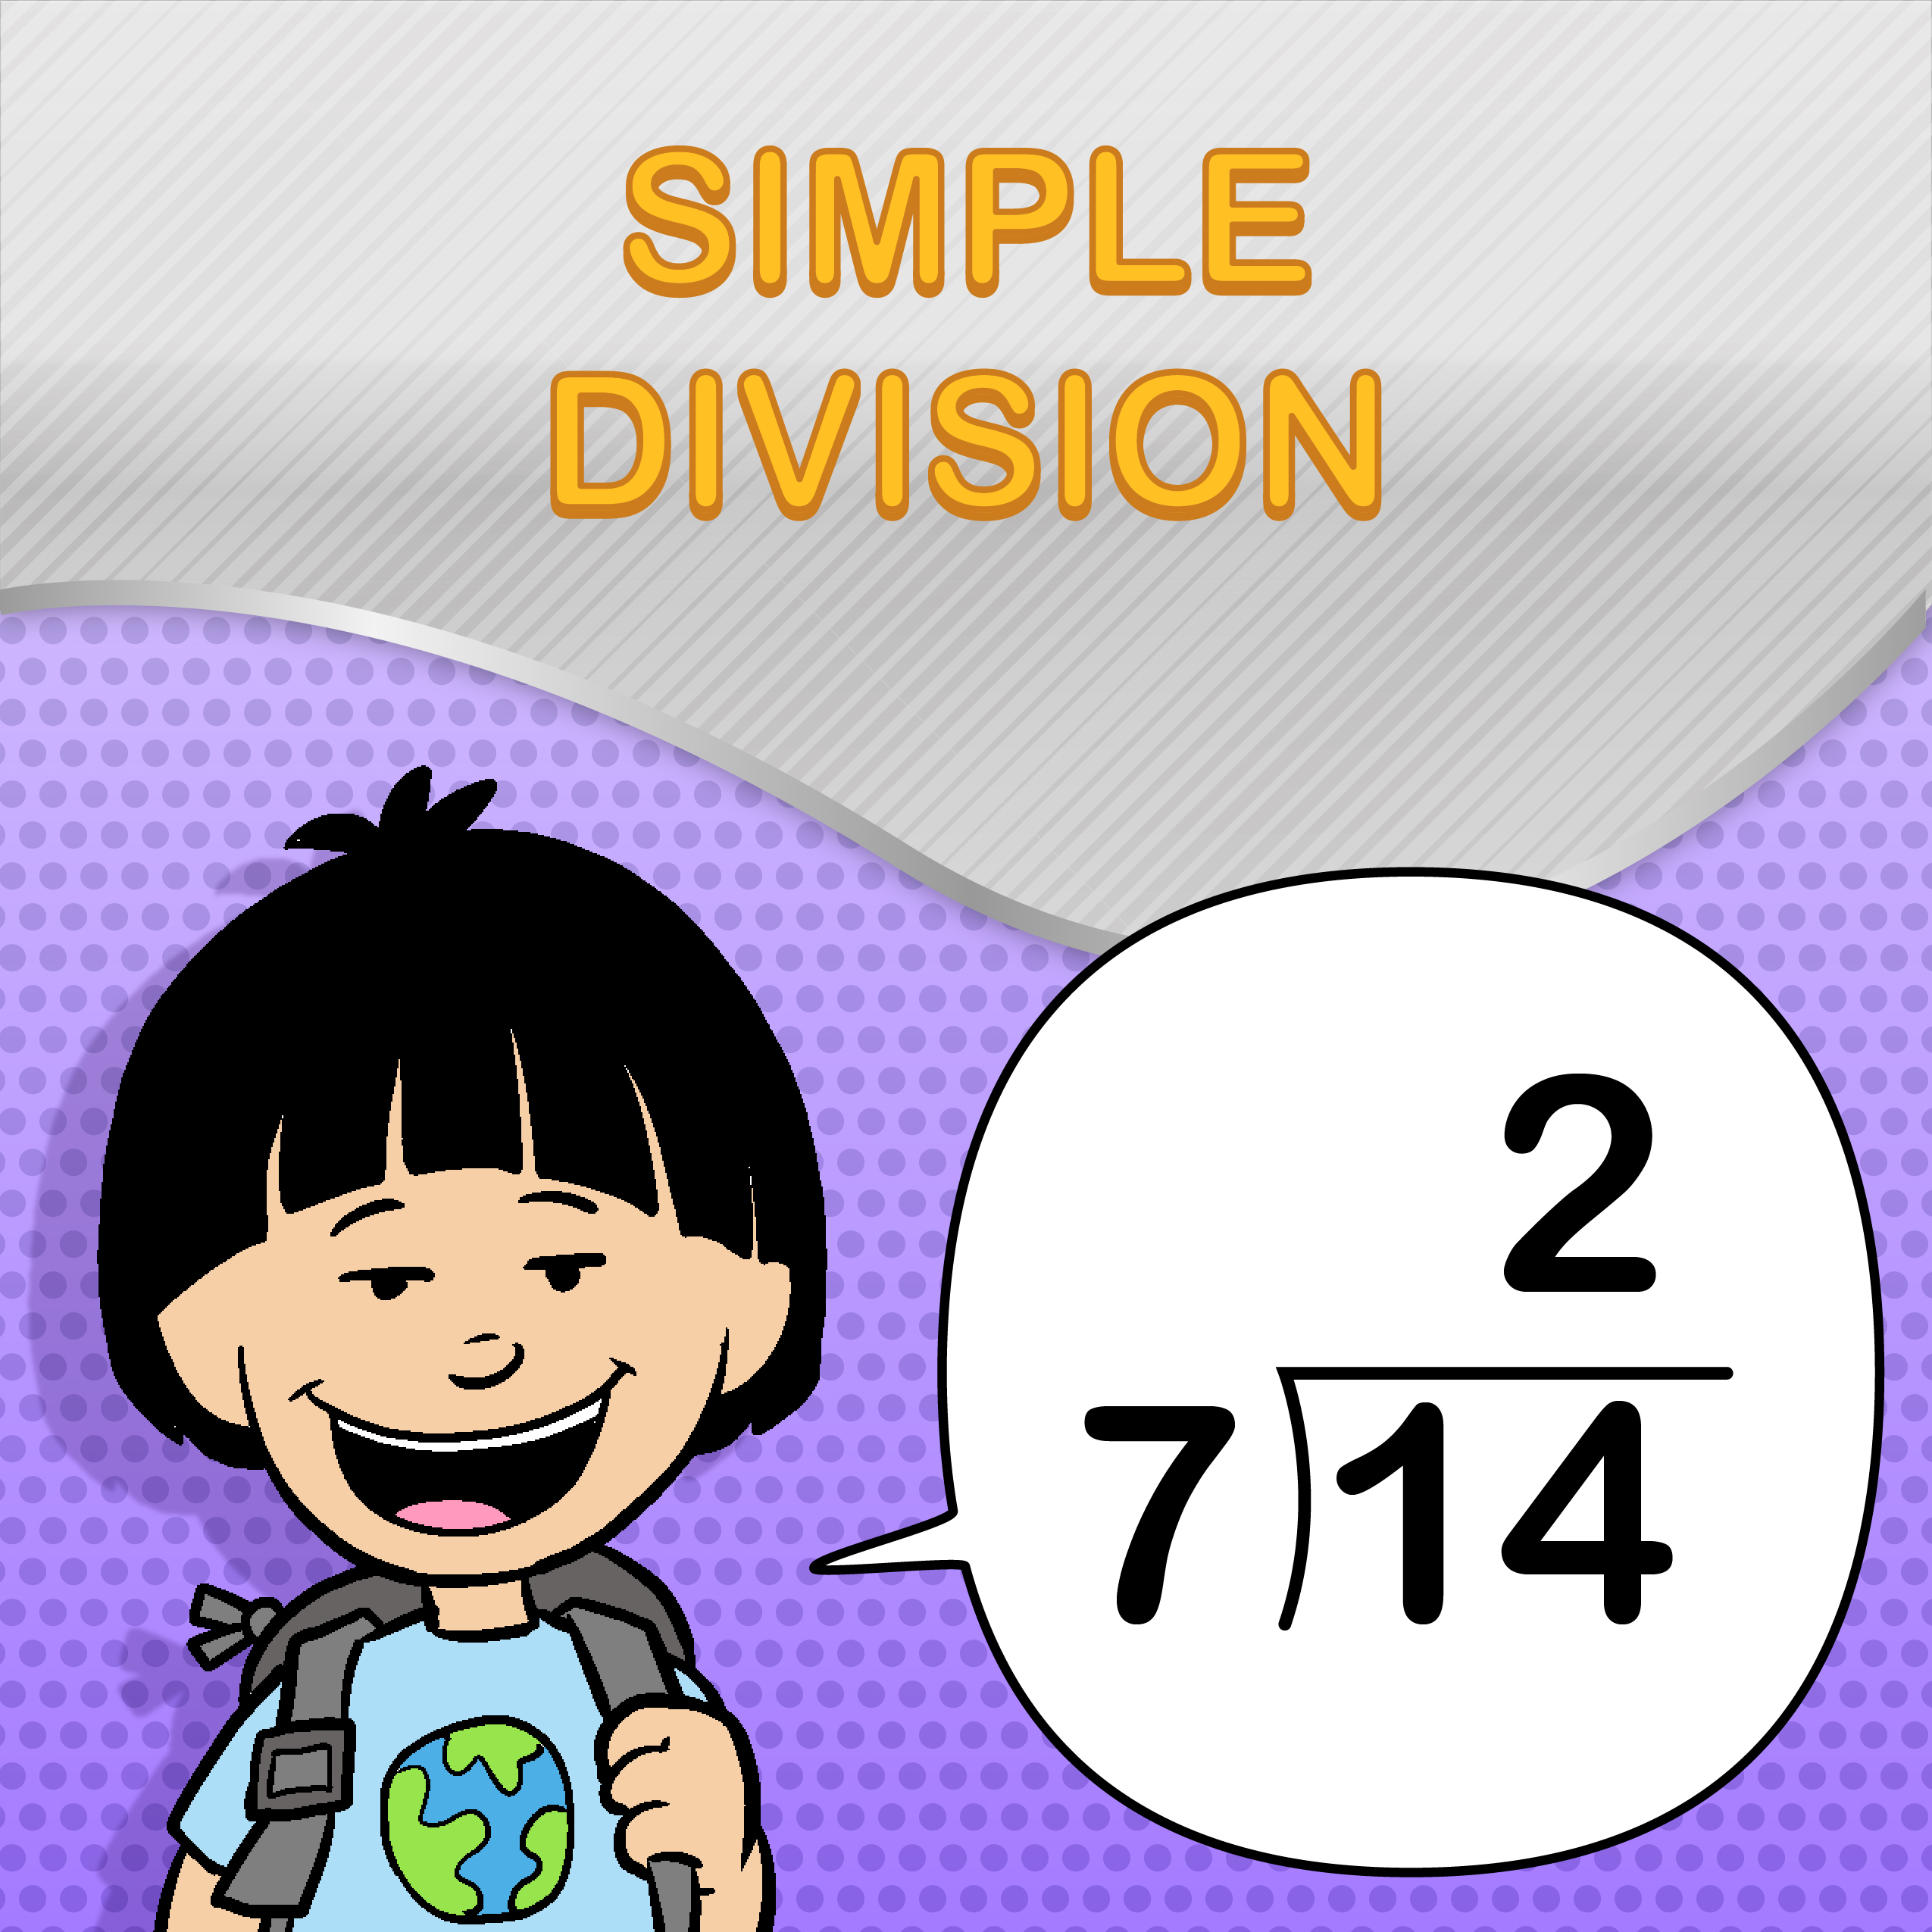 Simple Division Worksheets For Kids